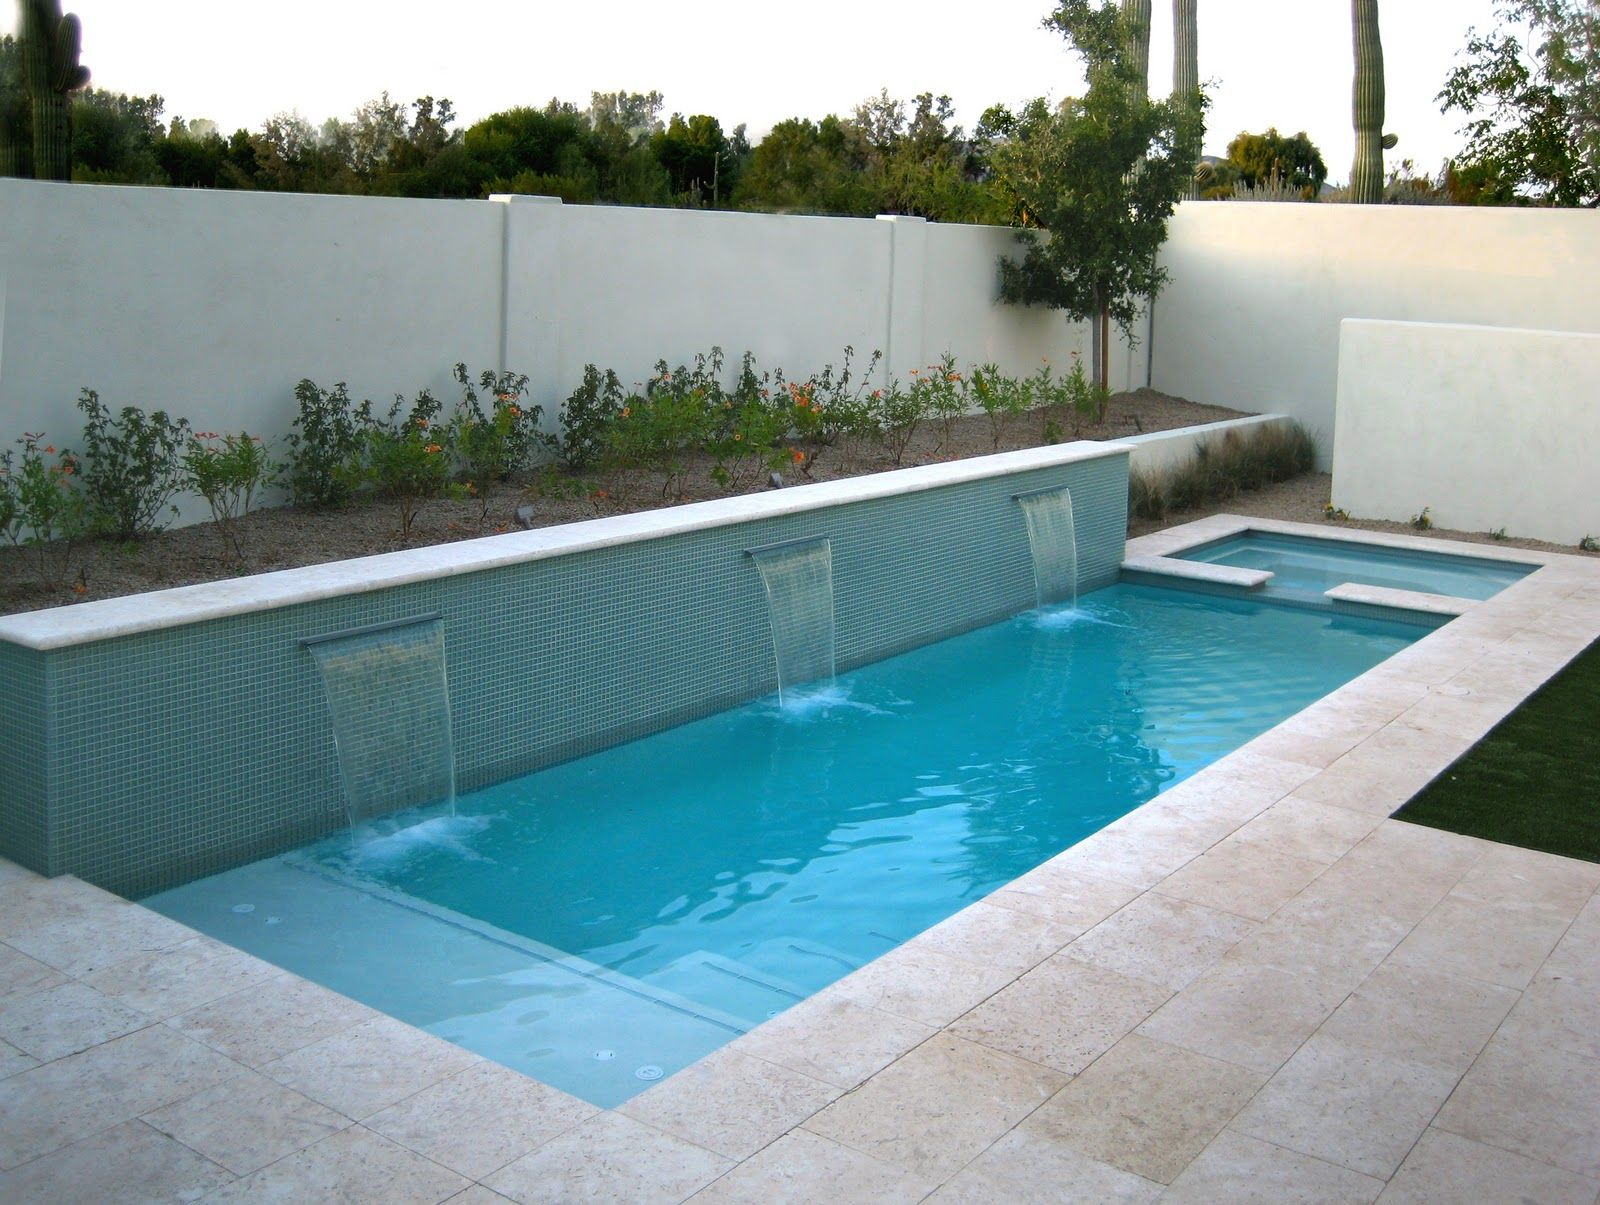 Swimming Pools In Small Spaces Alpentile Glass Tile Pools And